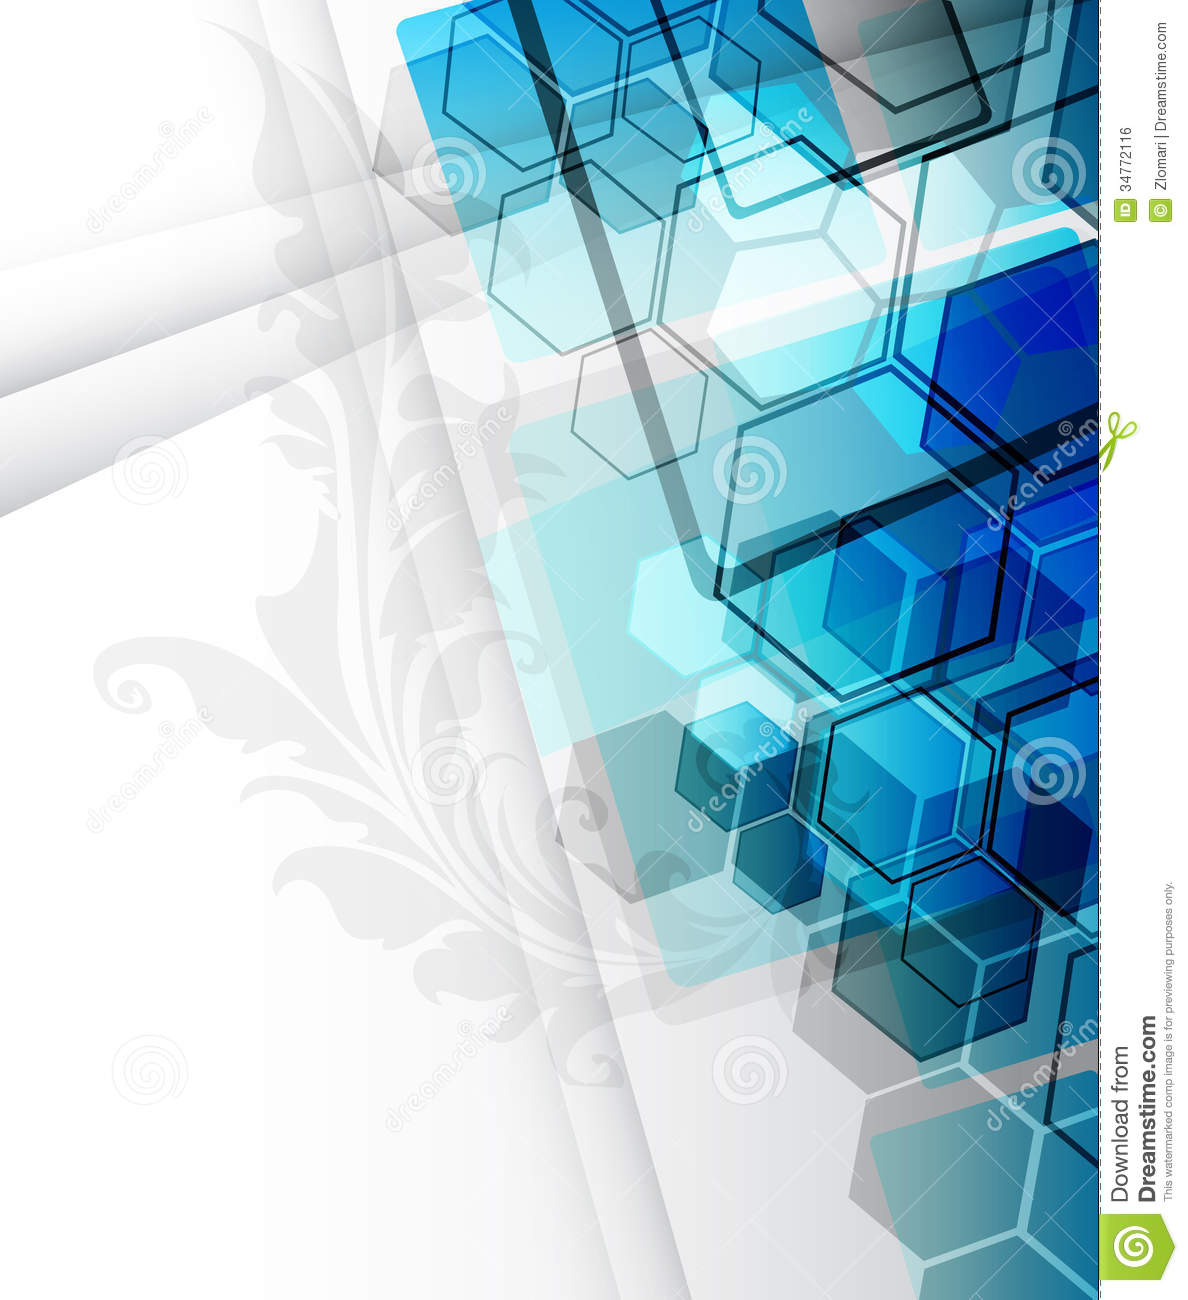 Abstract Vector Design Stock Vector Illustration Of Eps10